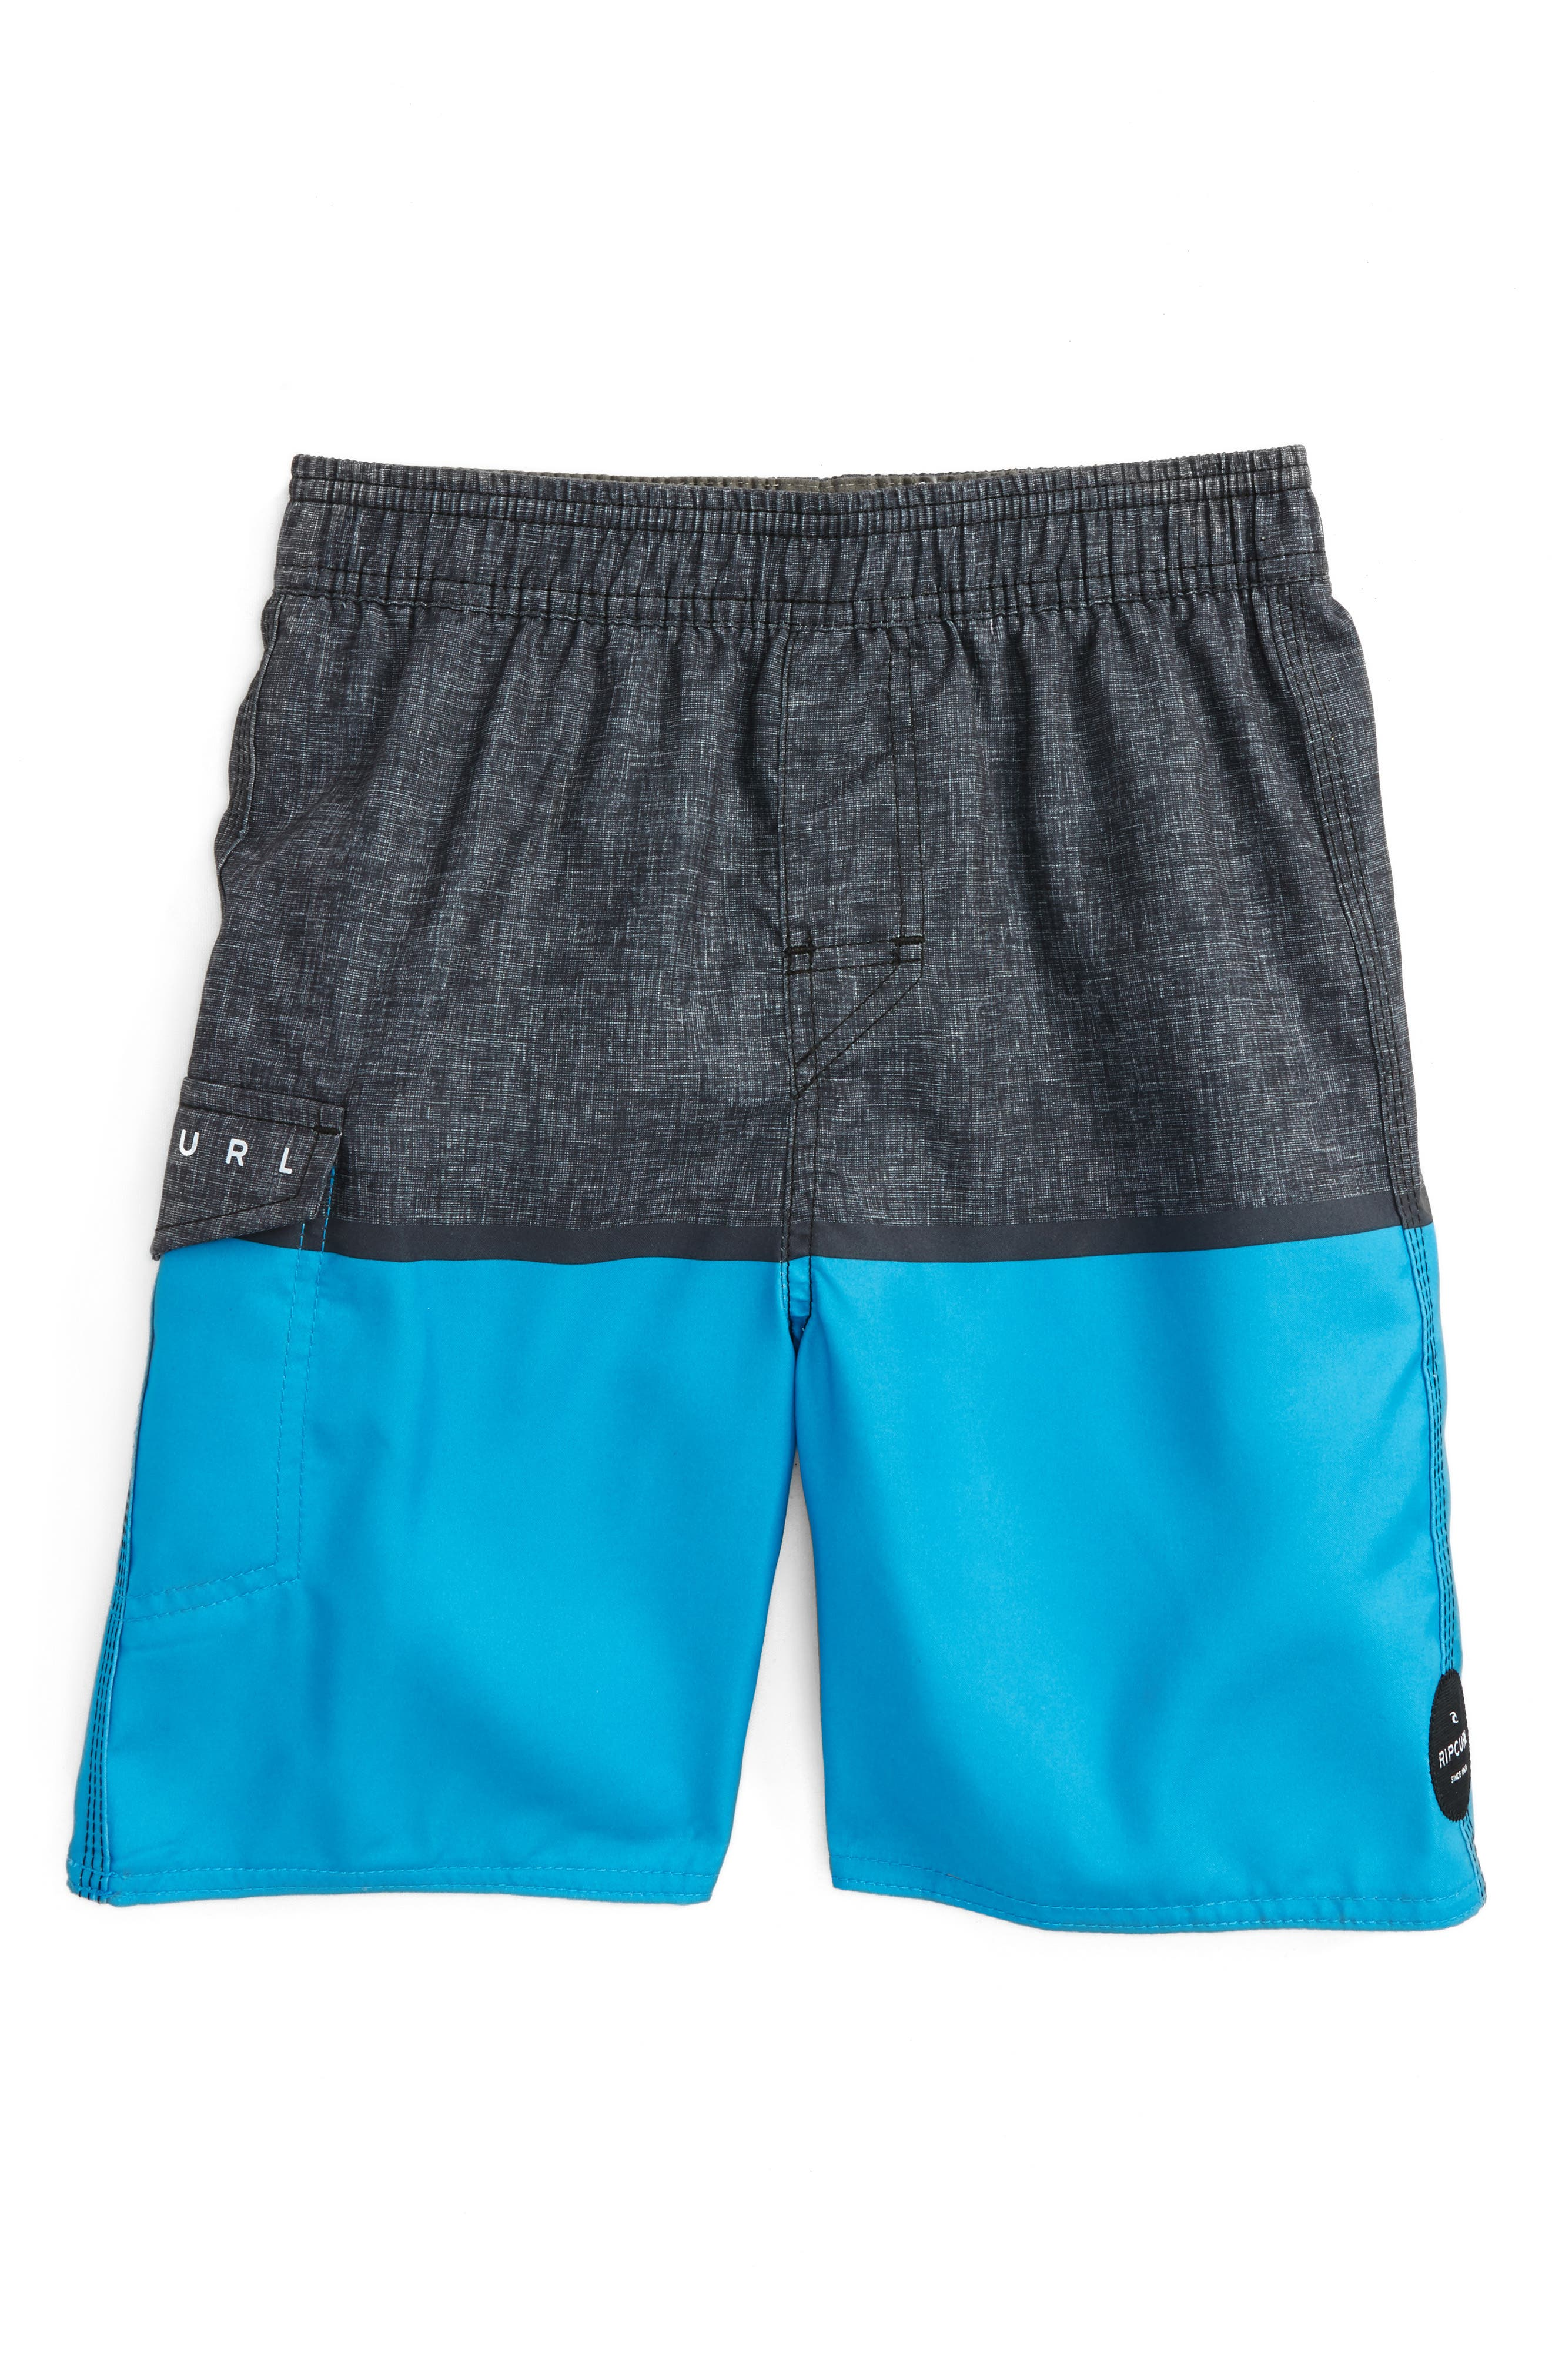 Rip Curl Mirage Combine Board Shorts (Toddler Boys & Little Boys)